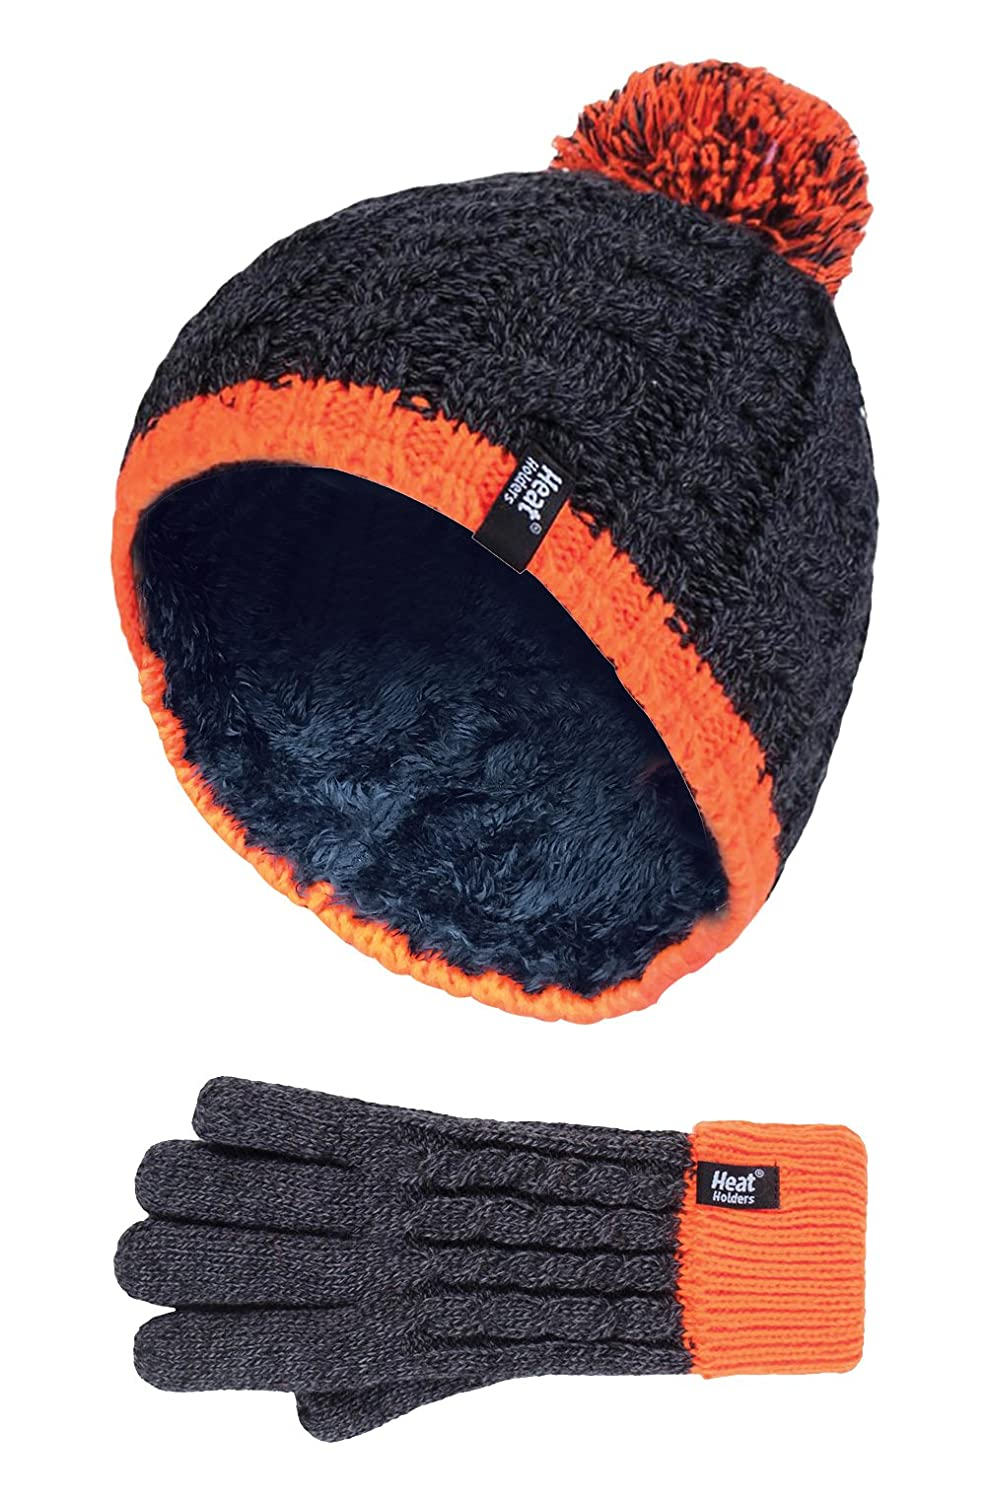 Heat Holders - Kids Boys Knitted Winter Pom Pom Cold Weather Hat and Gloves Set CO1P7)